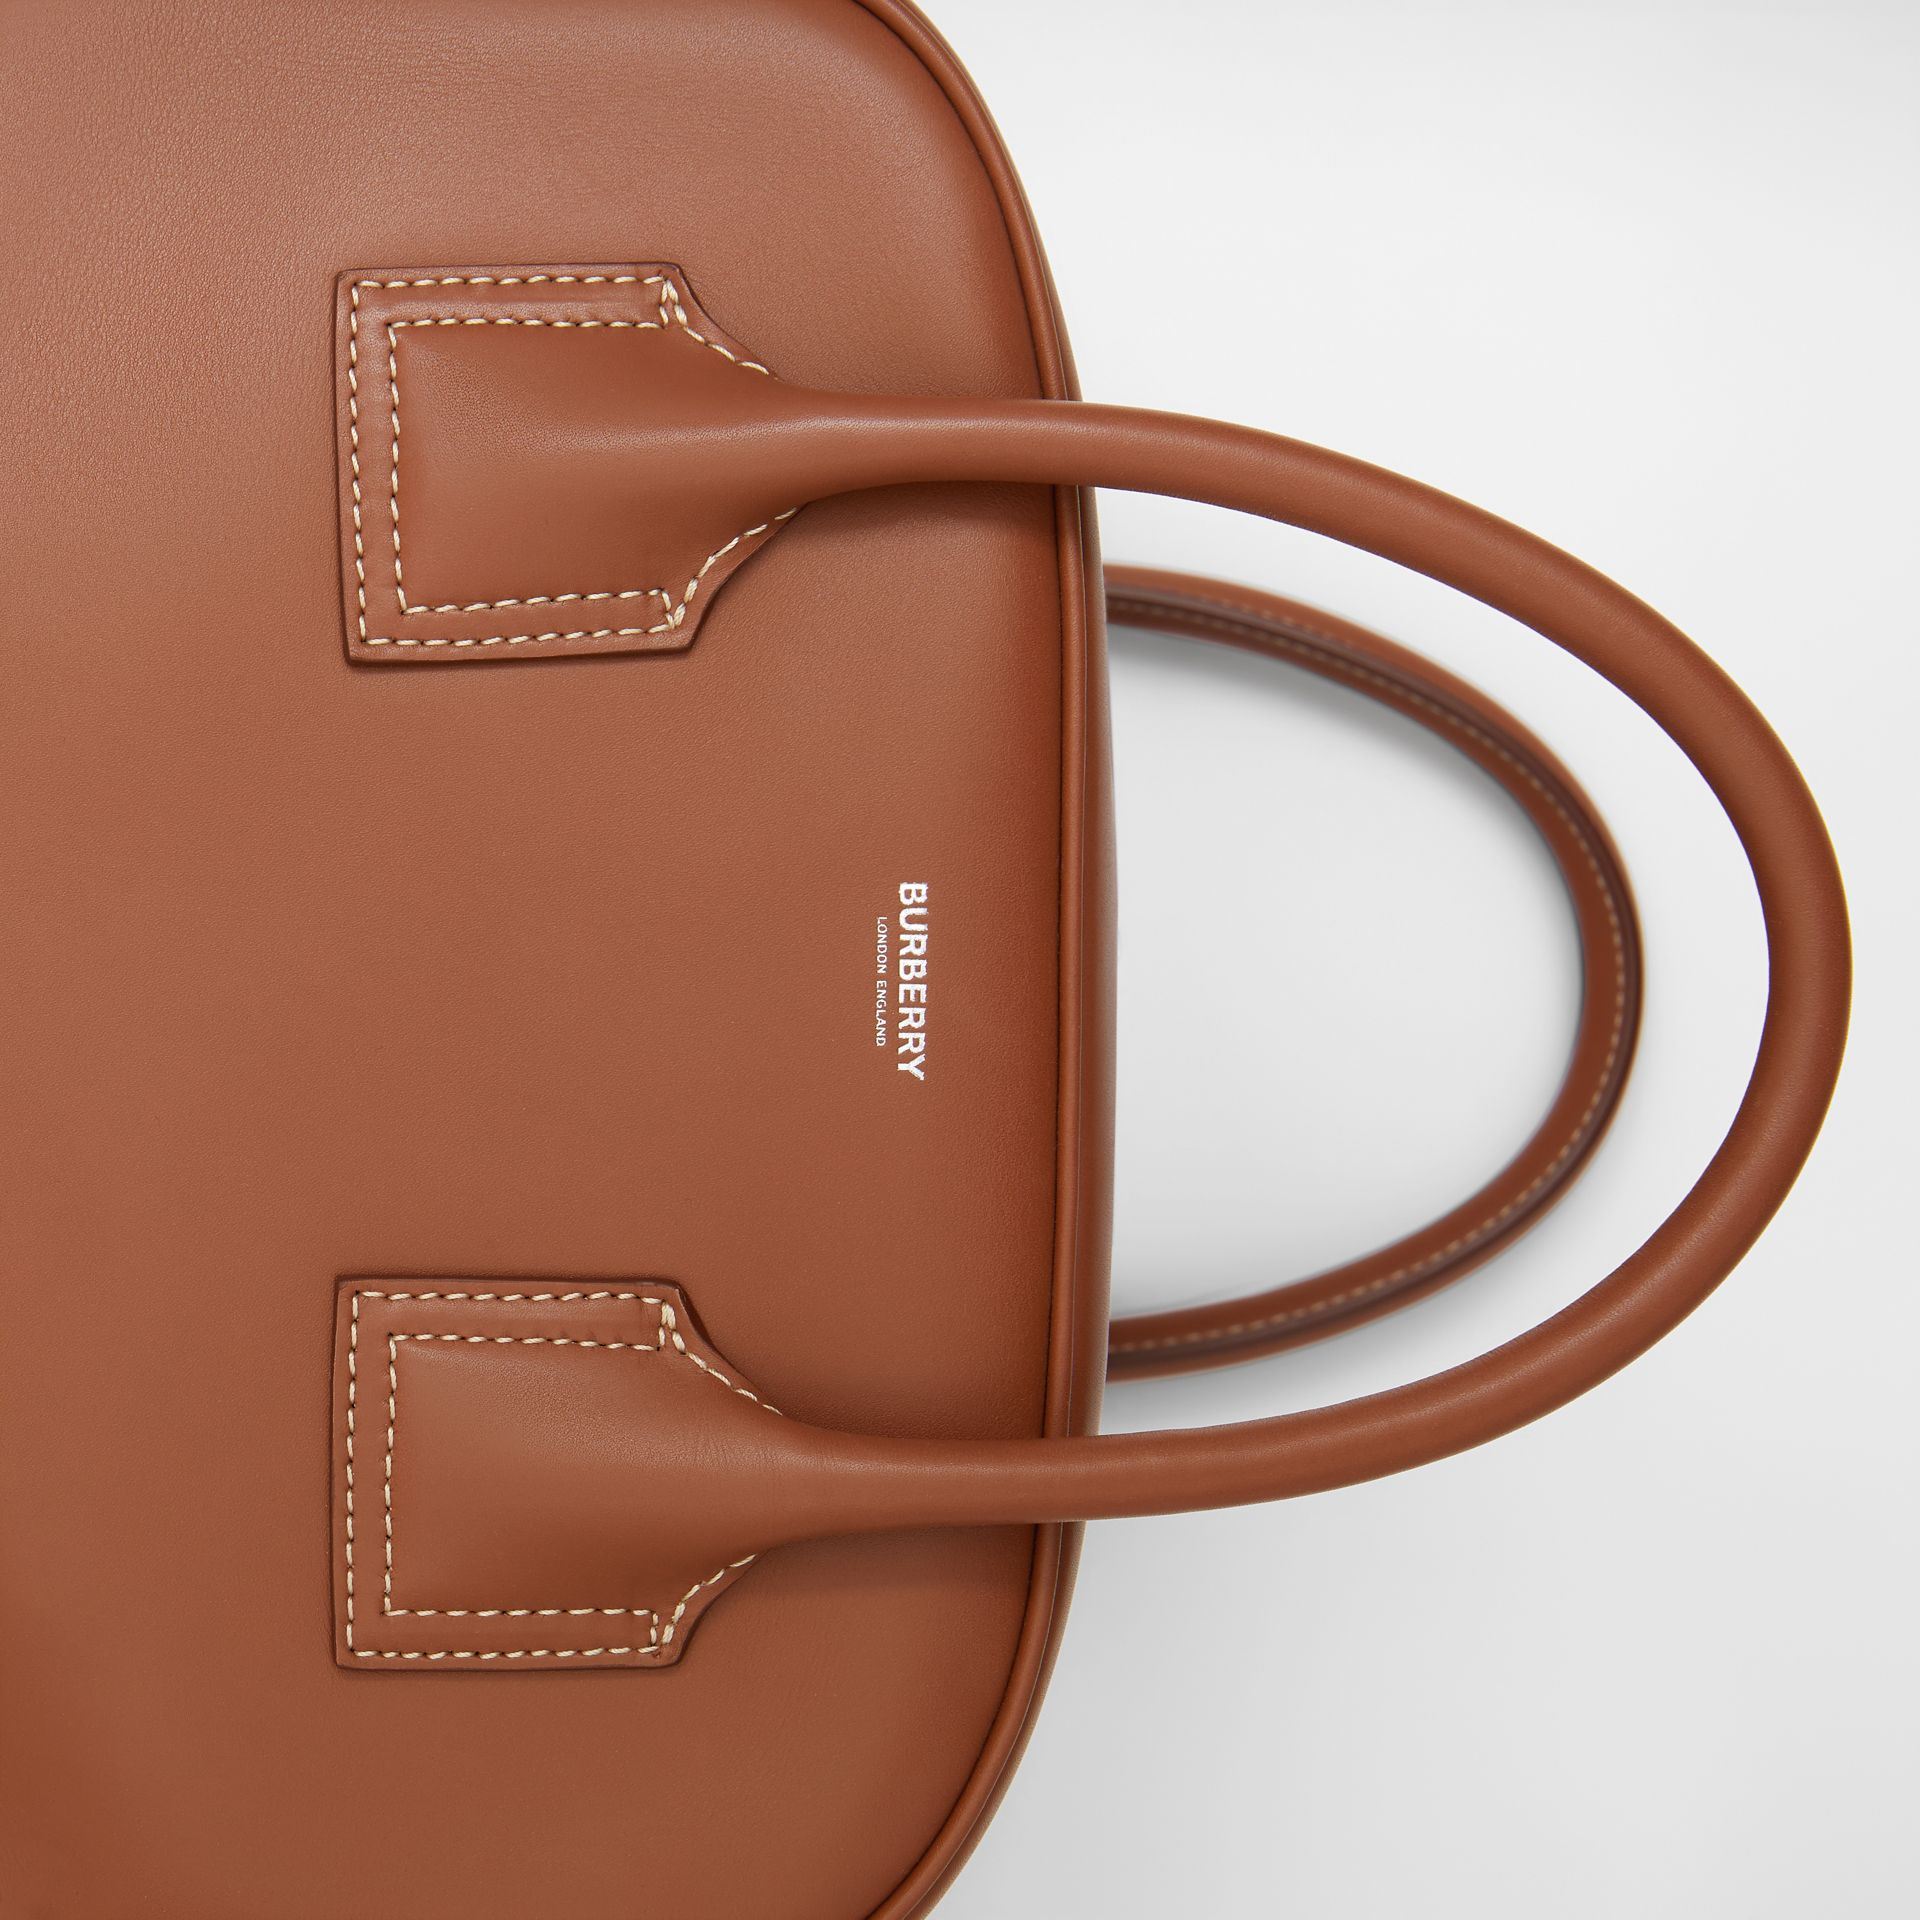 Medium Leather Cube Bag in Malt Brown - Women | Burberry - gallery image 1